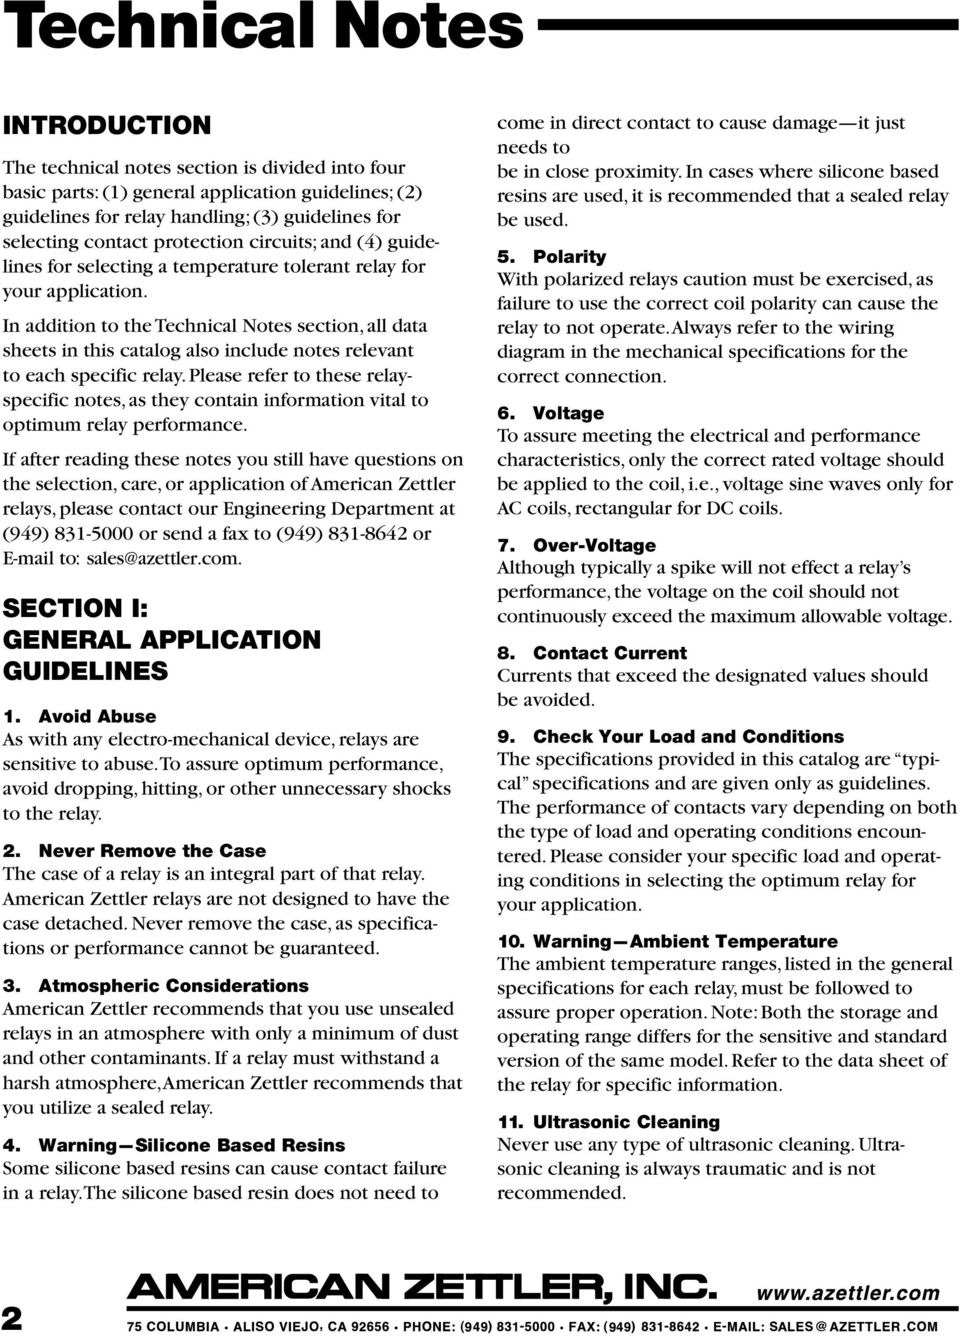 American Zettler Inc Relay Technical Notes Pdf Mechanical Wiring Diagram In Addition To The Section All Data Sheets This Catalog Also Include